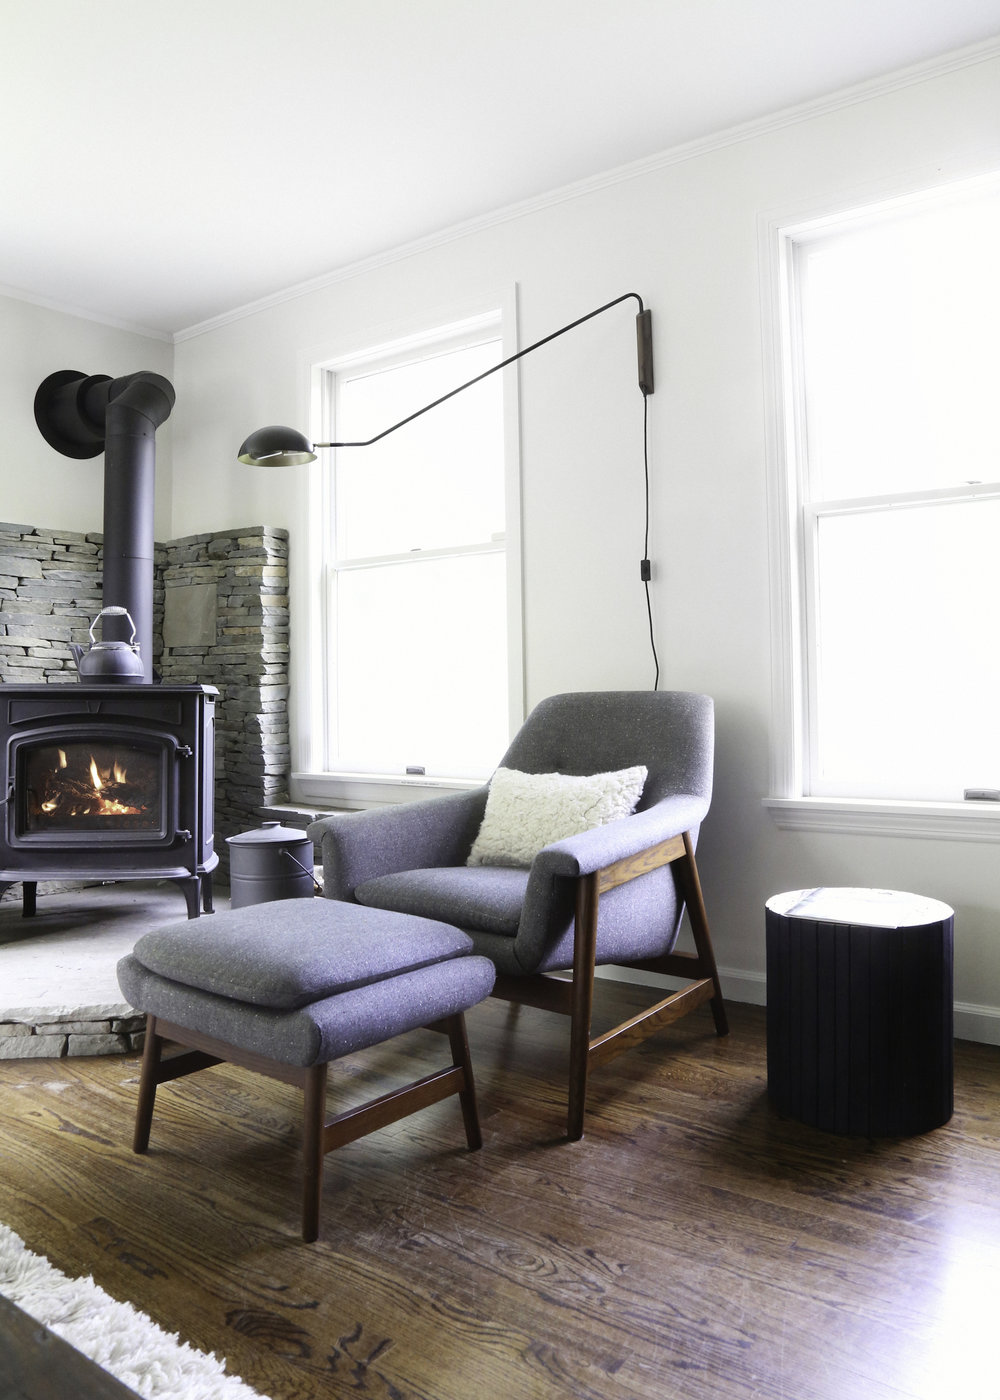 HUBERT HOUSE CHAIR AND FIRE.jpg